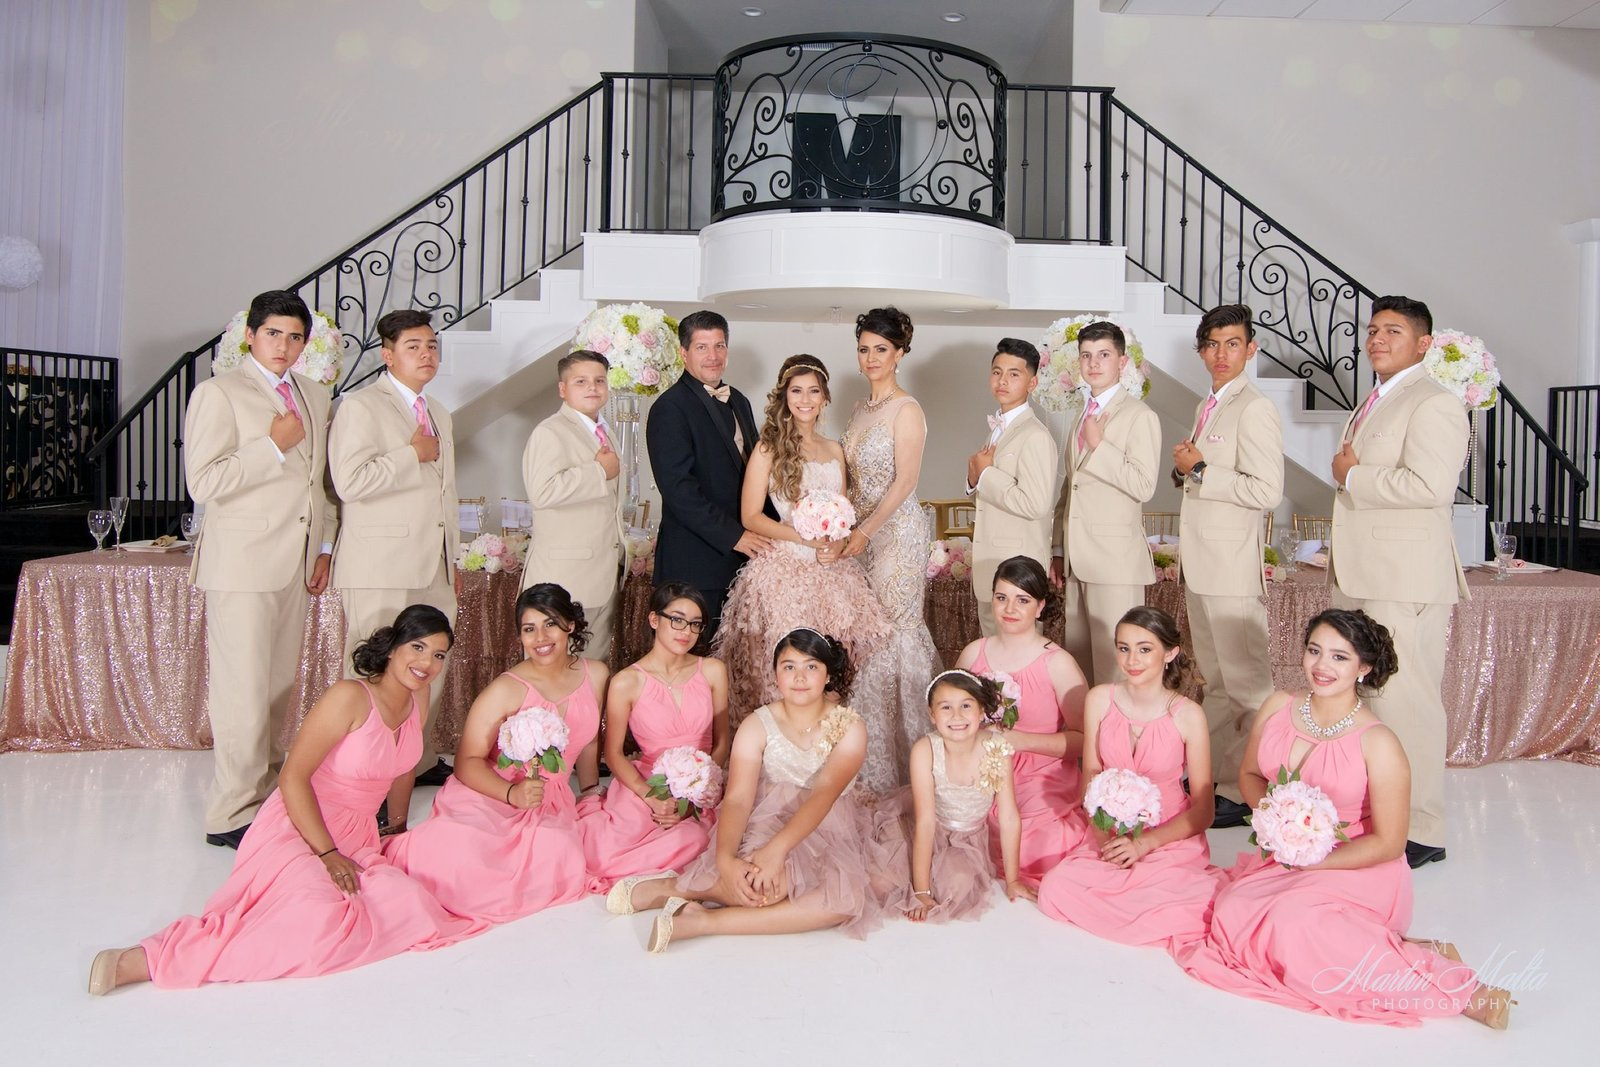 photography-photographer-wedding-quinceanera-xv-085